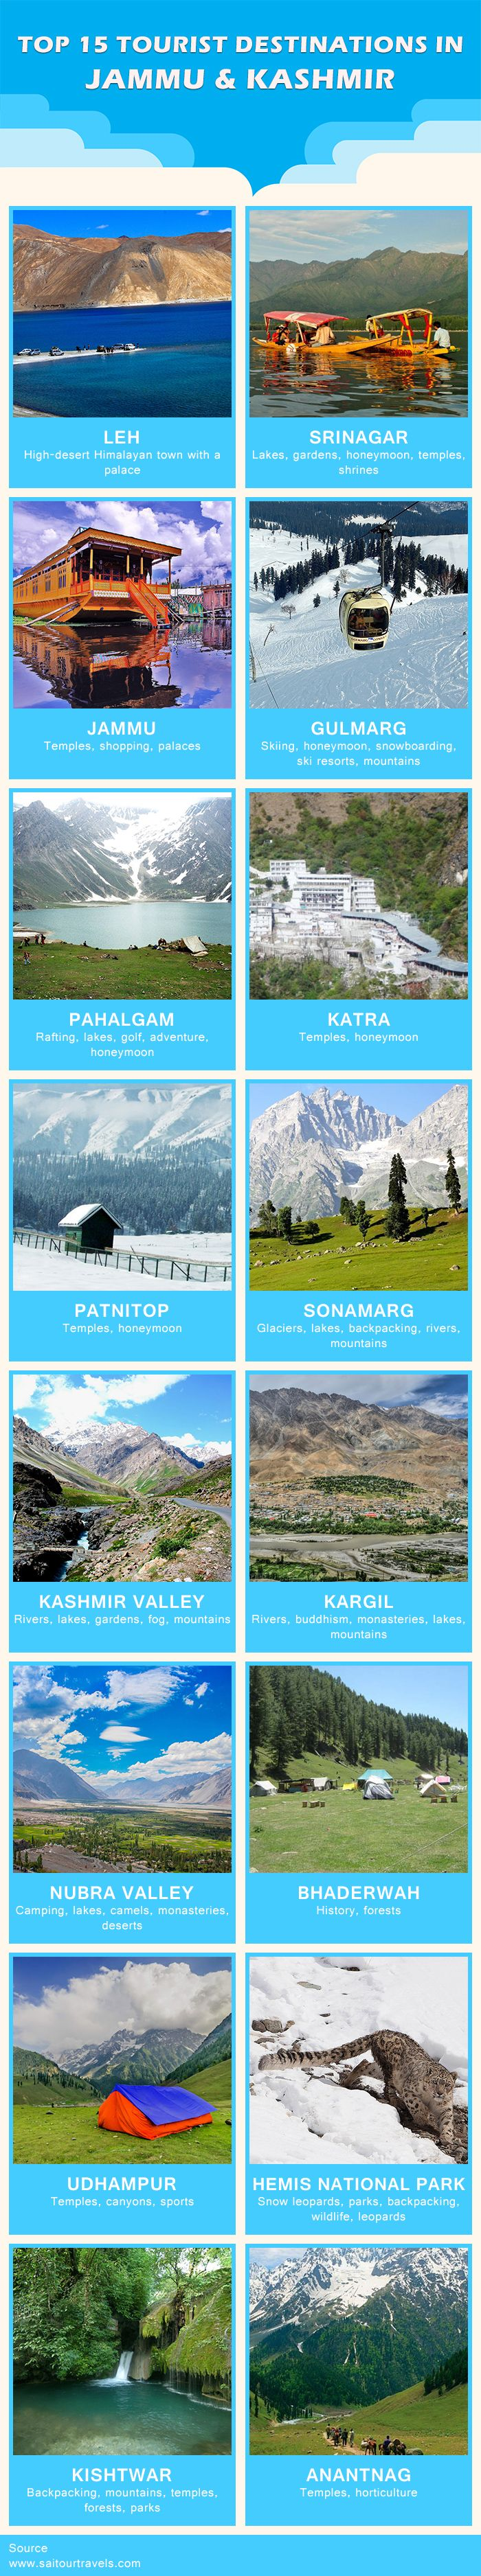 Top 15 Tourist Destinations in #JammuKashmir Have a look: http://www.saitourtravels.com/top-15-tourist-destinations-jammu-kashmir